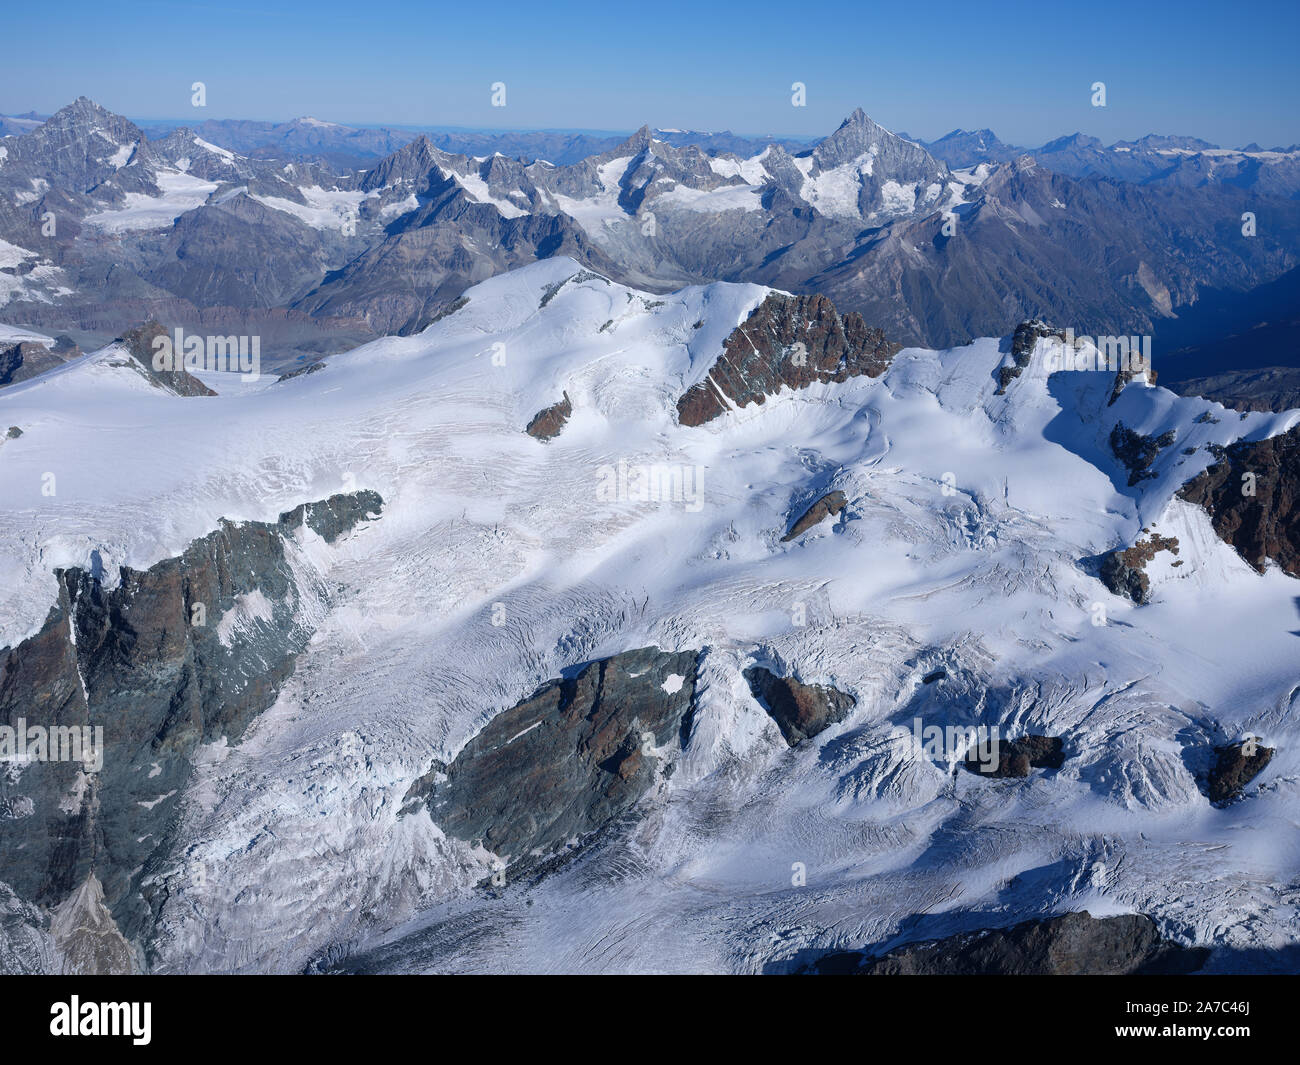 ITALIAN SIDE OF 4164m-HIGH BREITHORN, 4506m-HIGH WEISSHORN IN THE DISTANCE (aerial view). Aosta Valley, Italy & Canton of Valais, Switzerland. Stock Photo